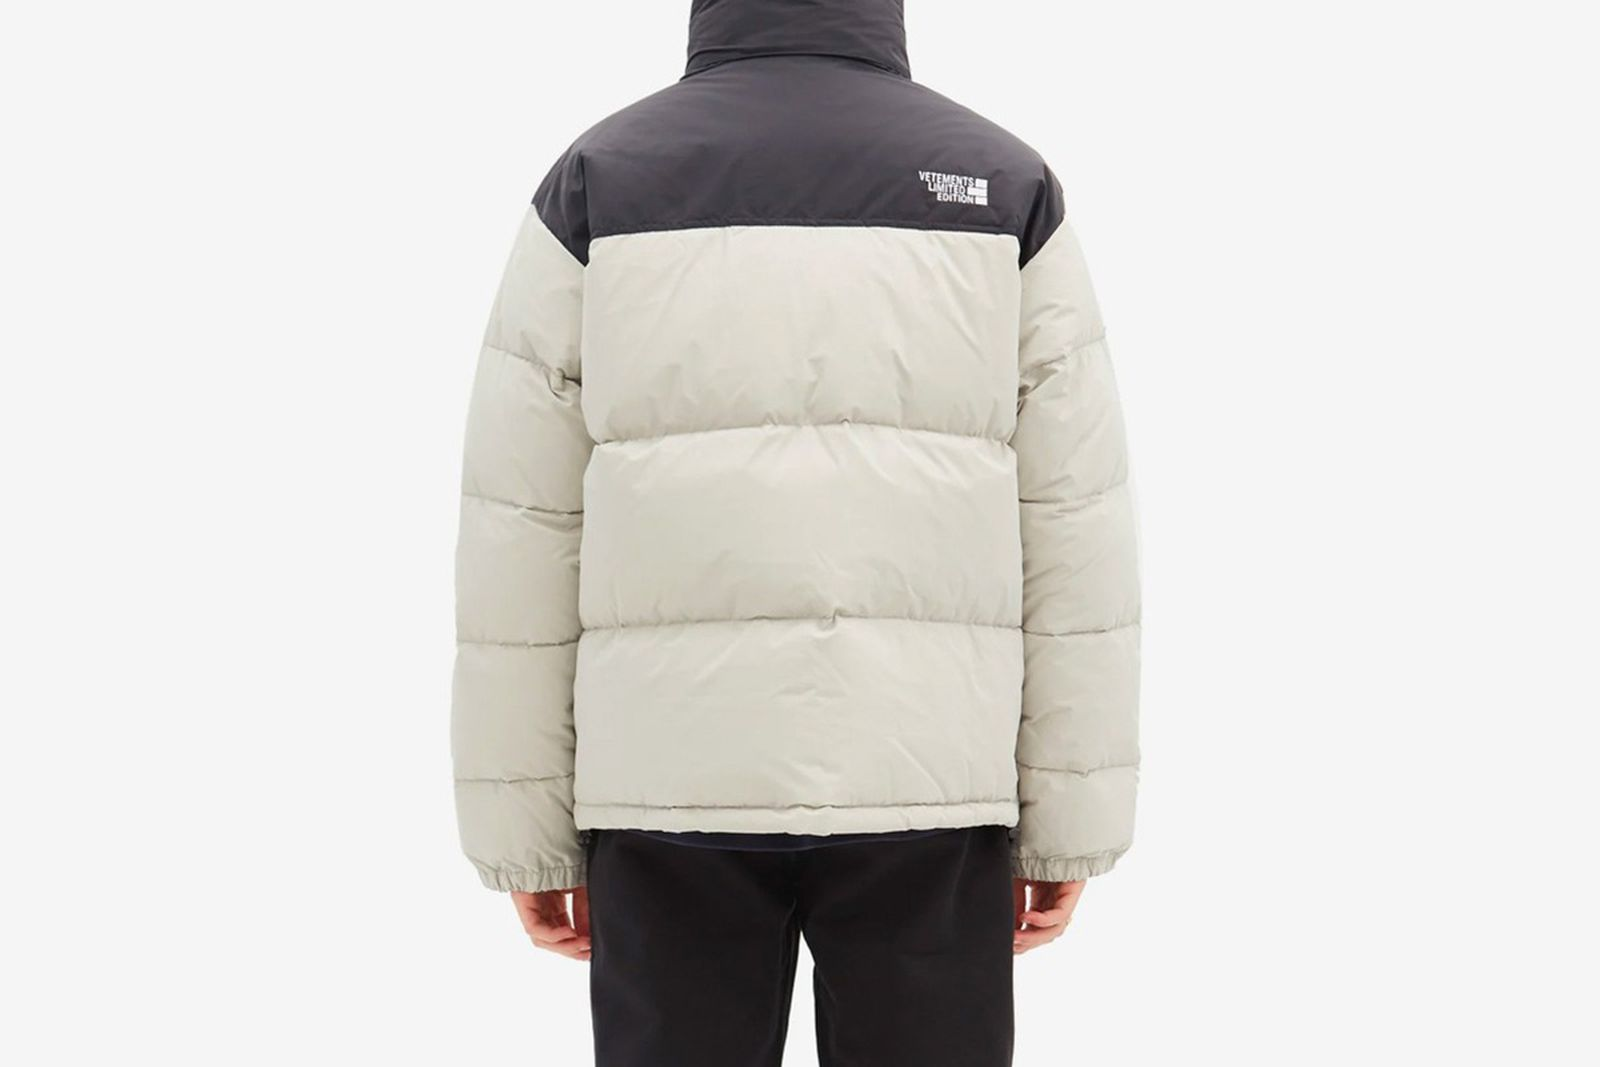 vetements-tnf-style-puffer-jacket-01